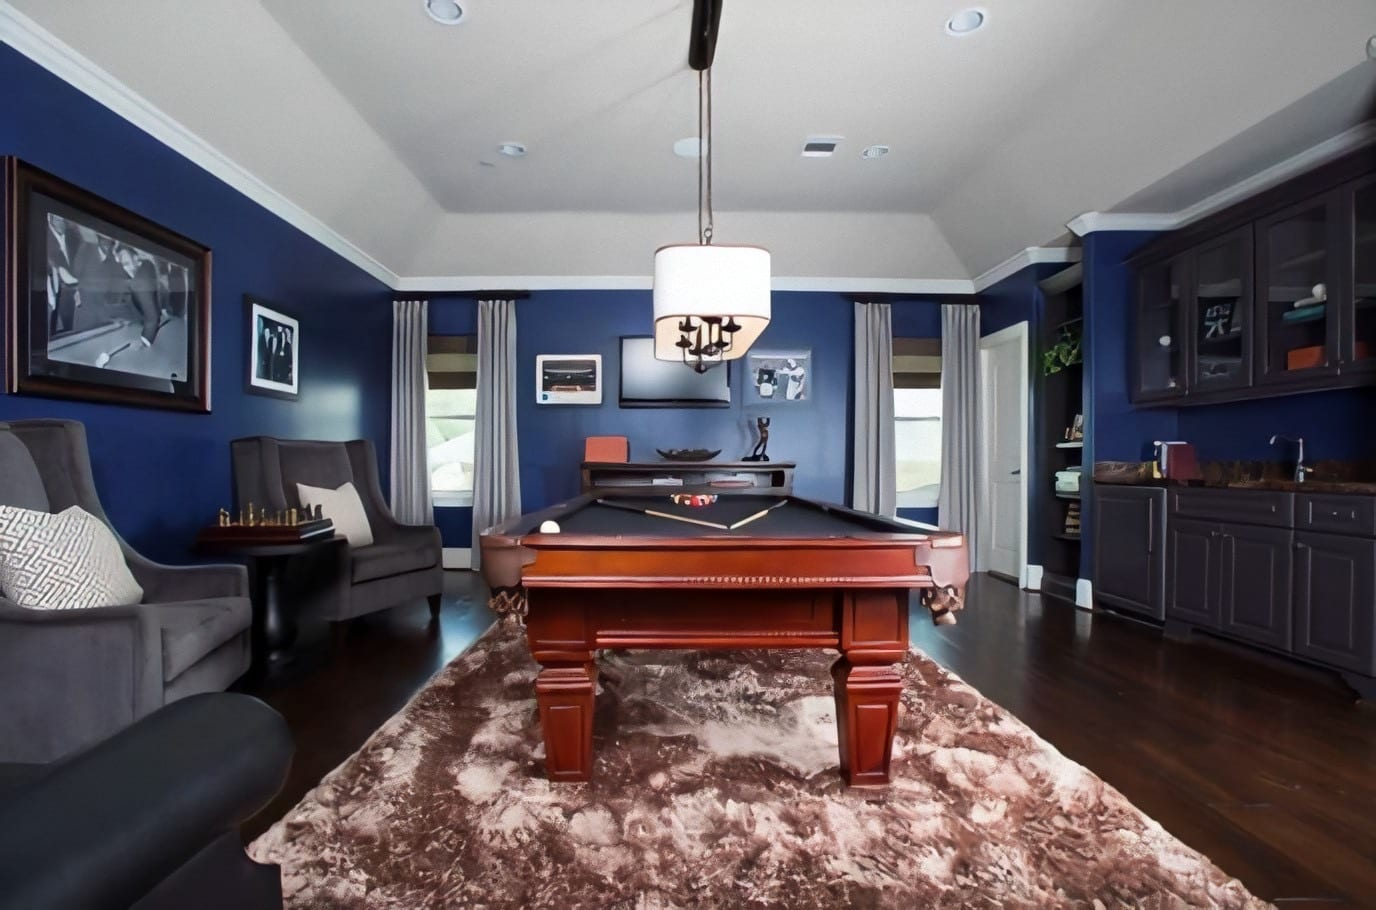 Nice pool table in the center of the room